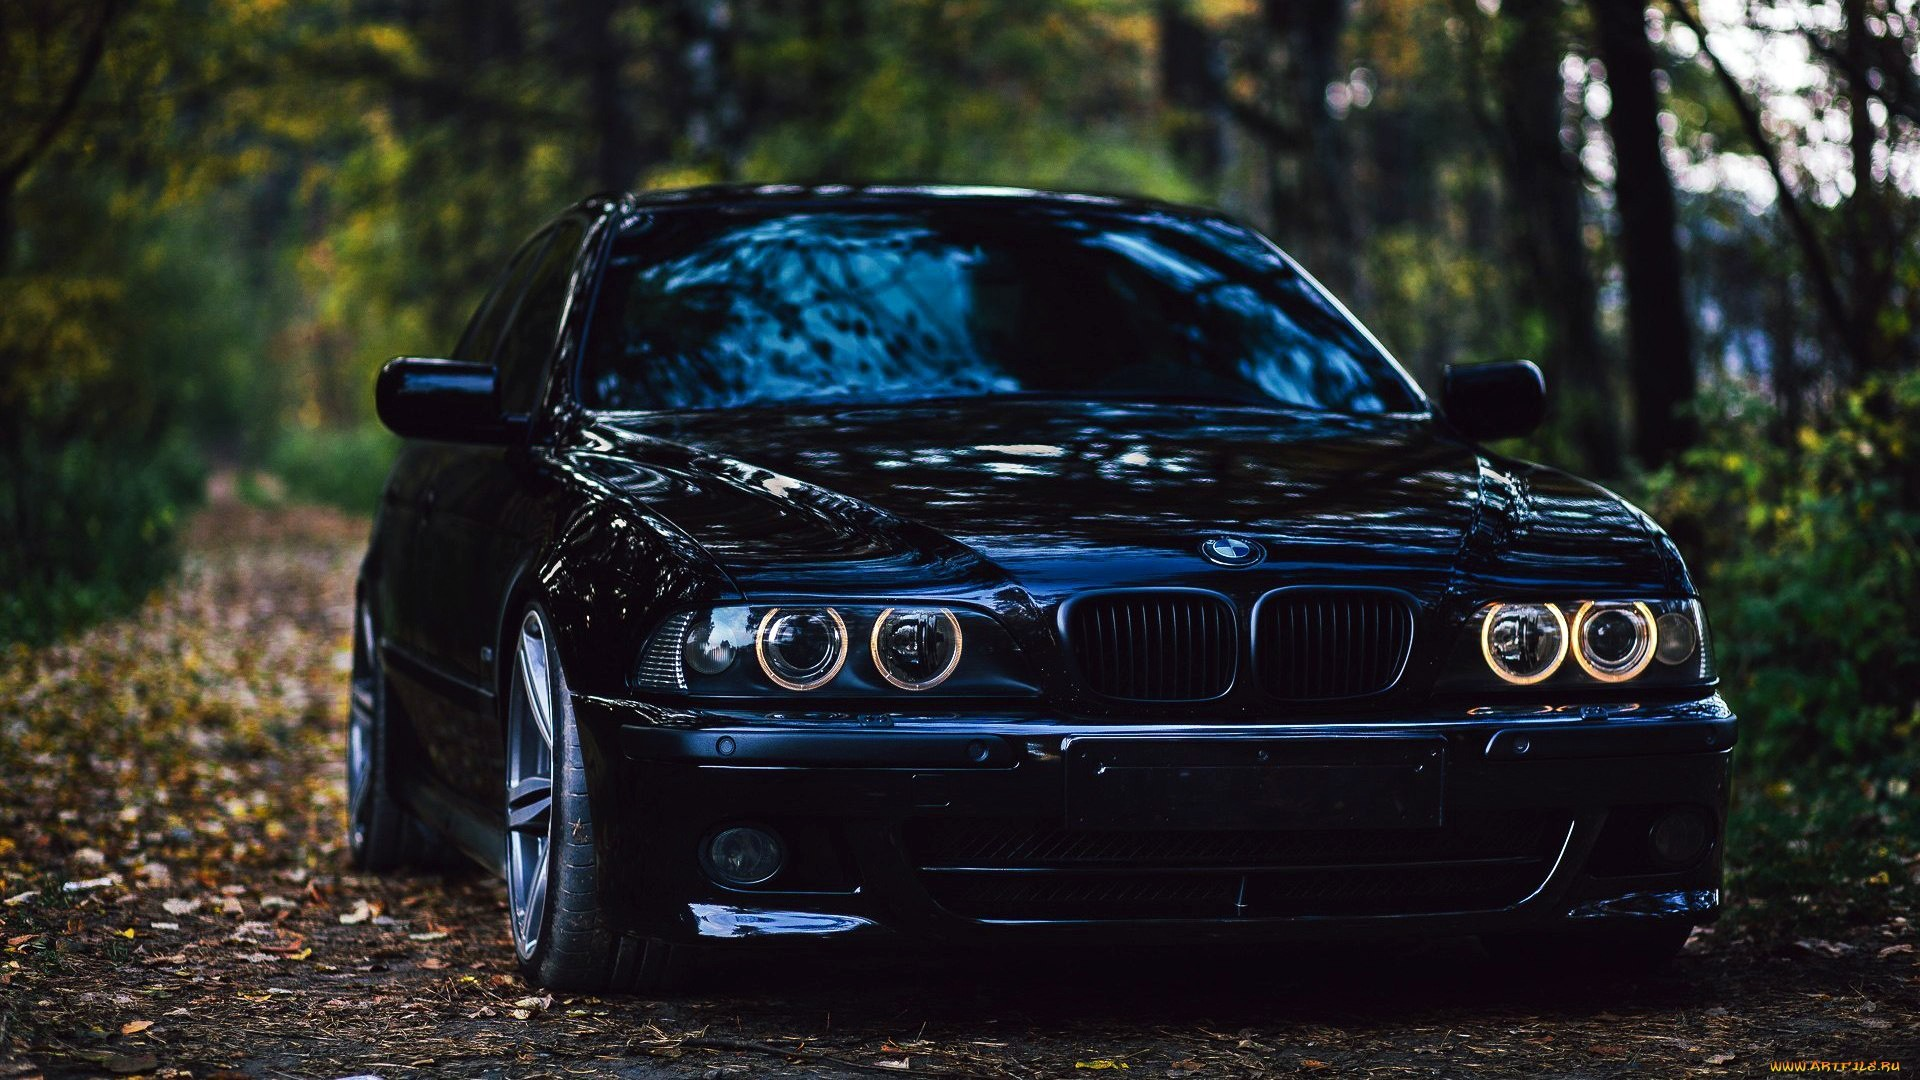 1920x1080 Pictures Of Bmw E39